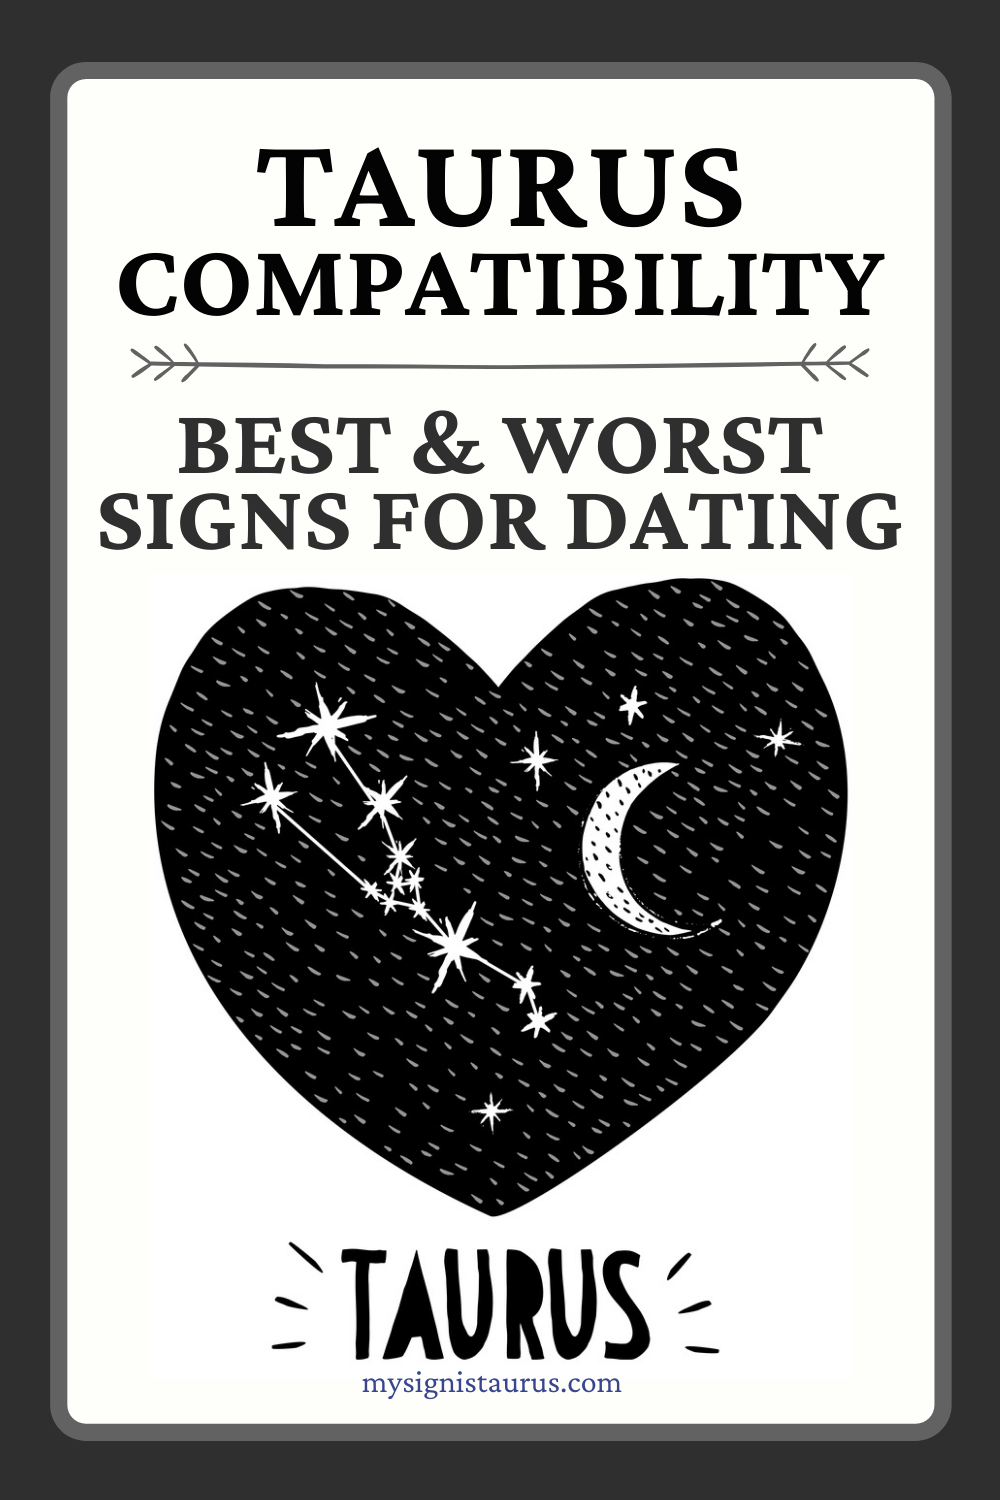 Taurus Compatibility For Love_ Best And Worst Signs For Dating, Taurus relationship #taurus #taurussign #astrology #zodiac